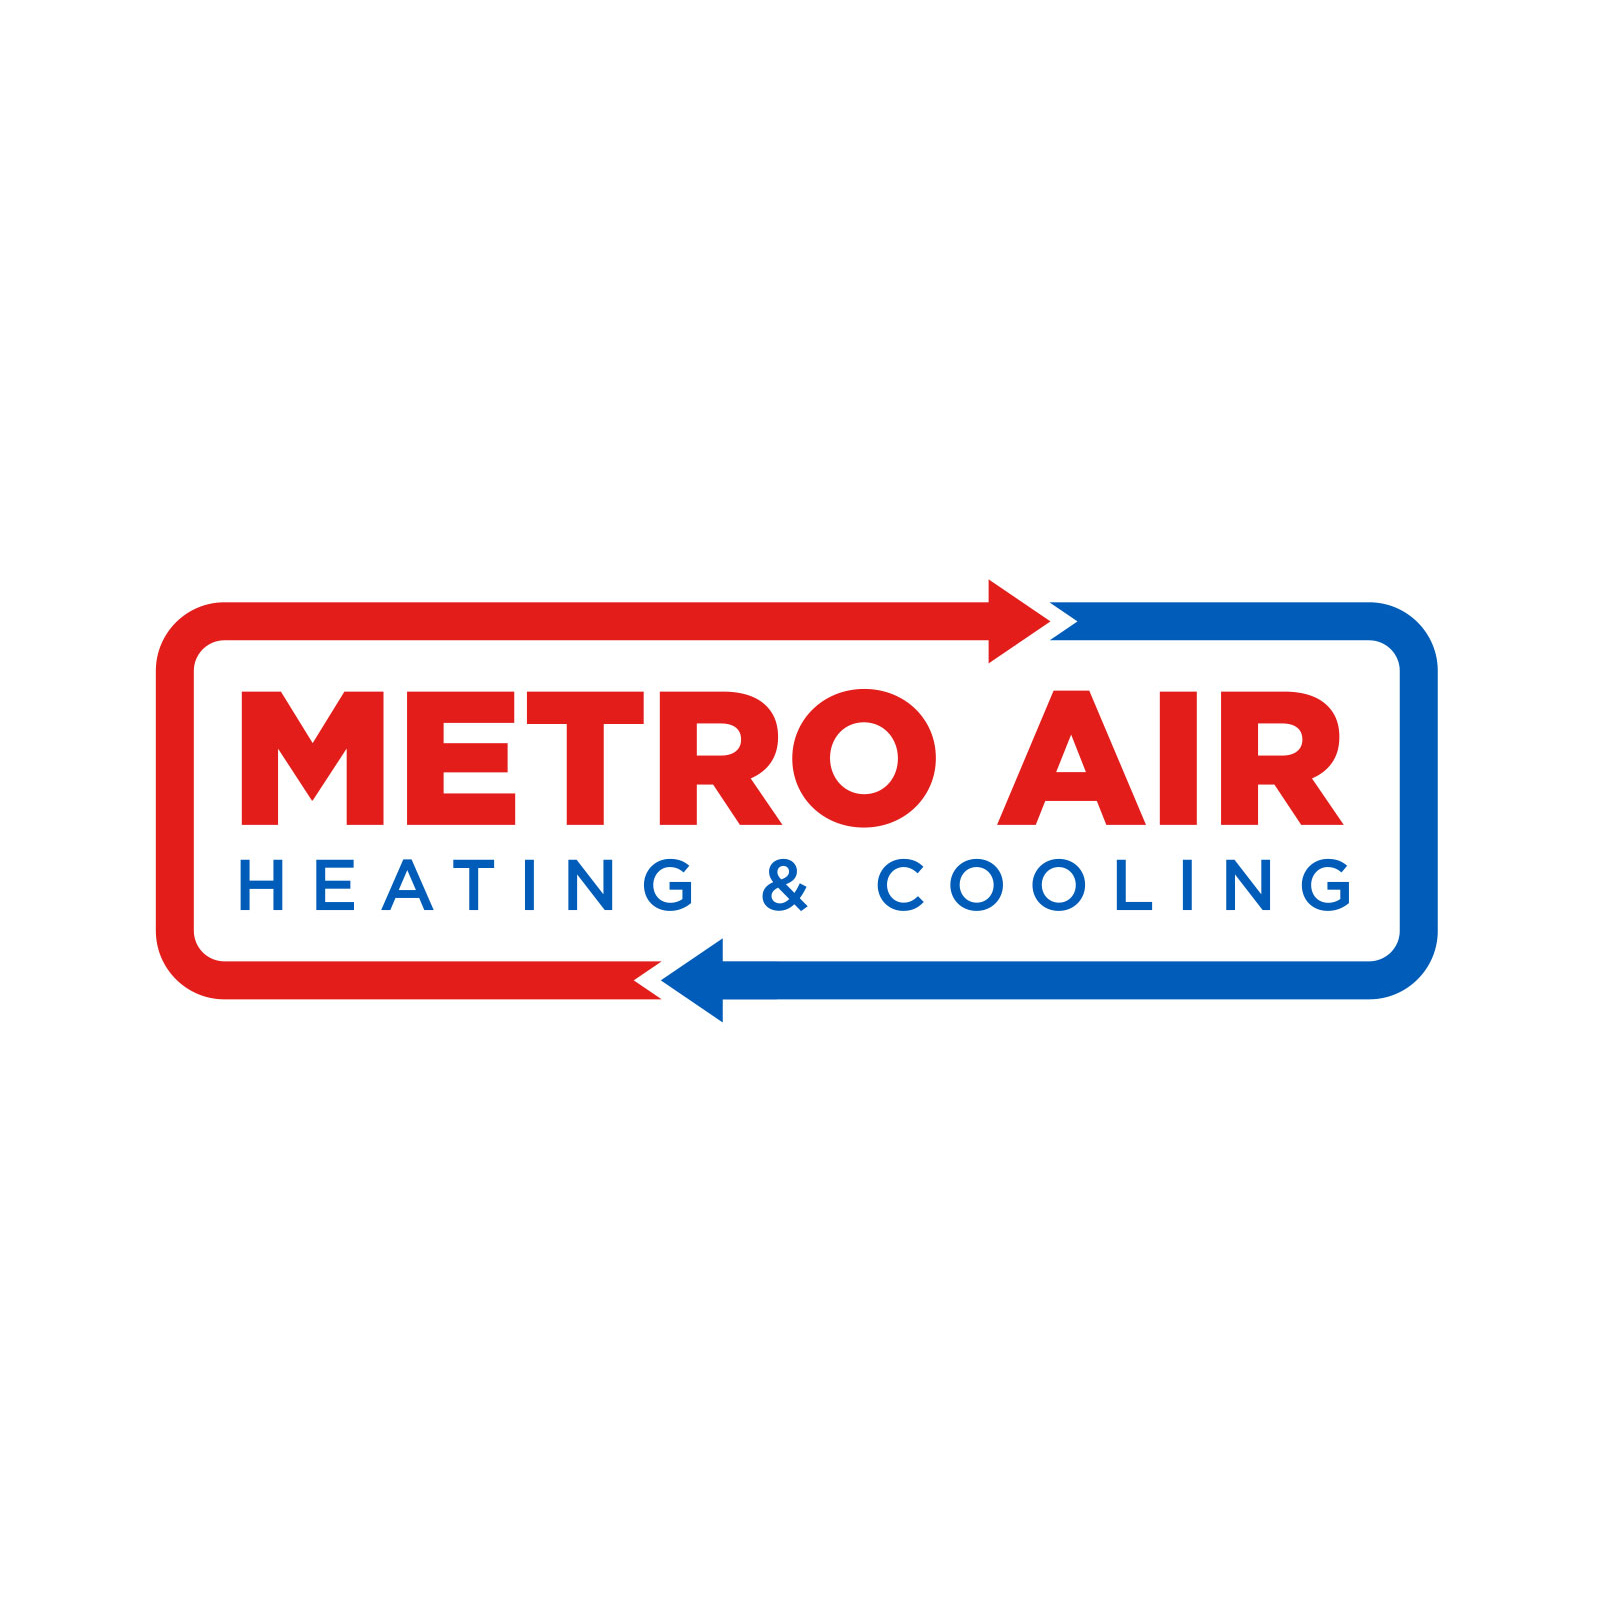 Metro Air Heating & Cooling